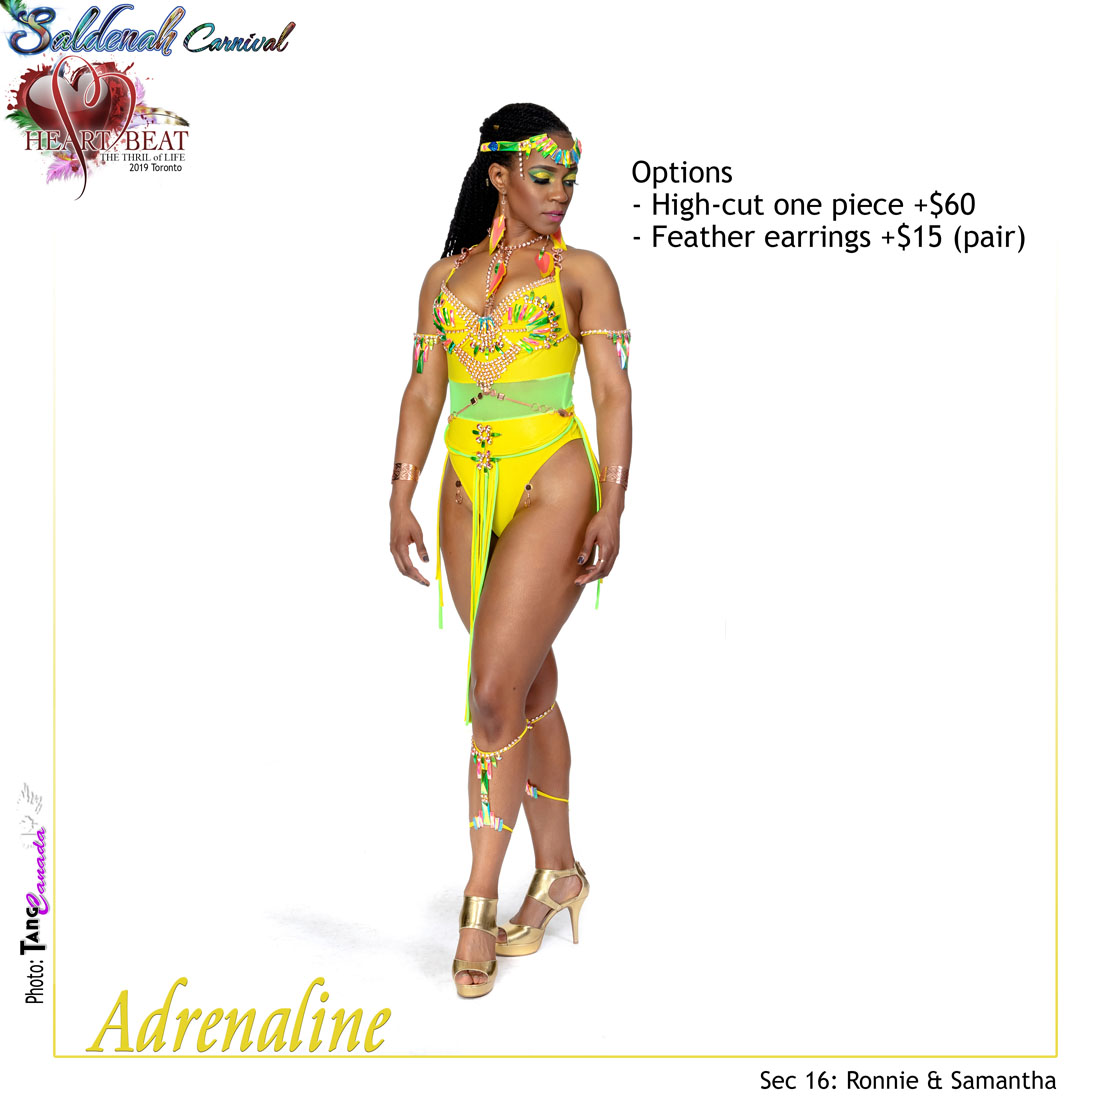 Saldenah Carnival Section 16 Adrenaline